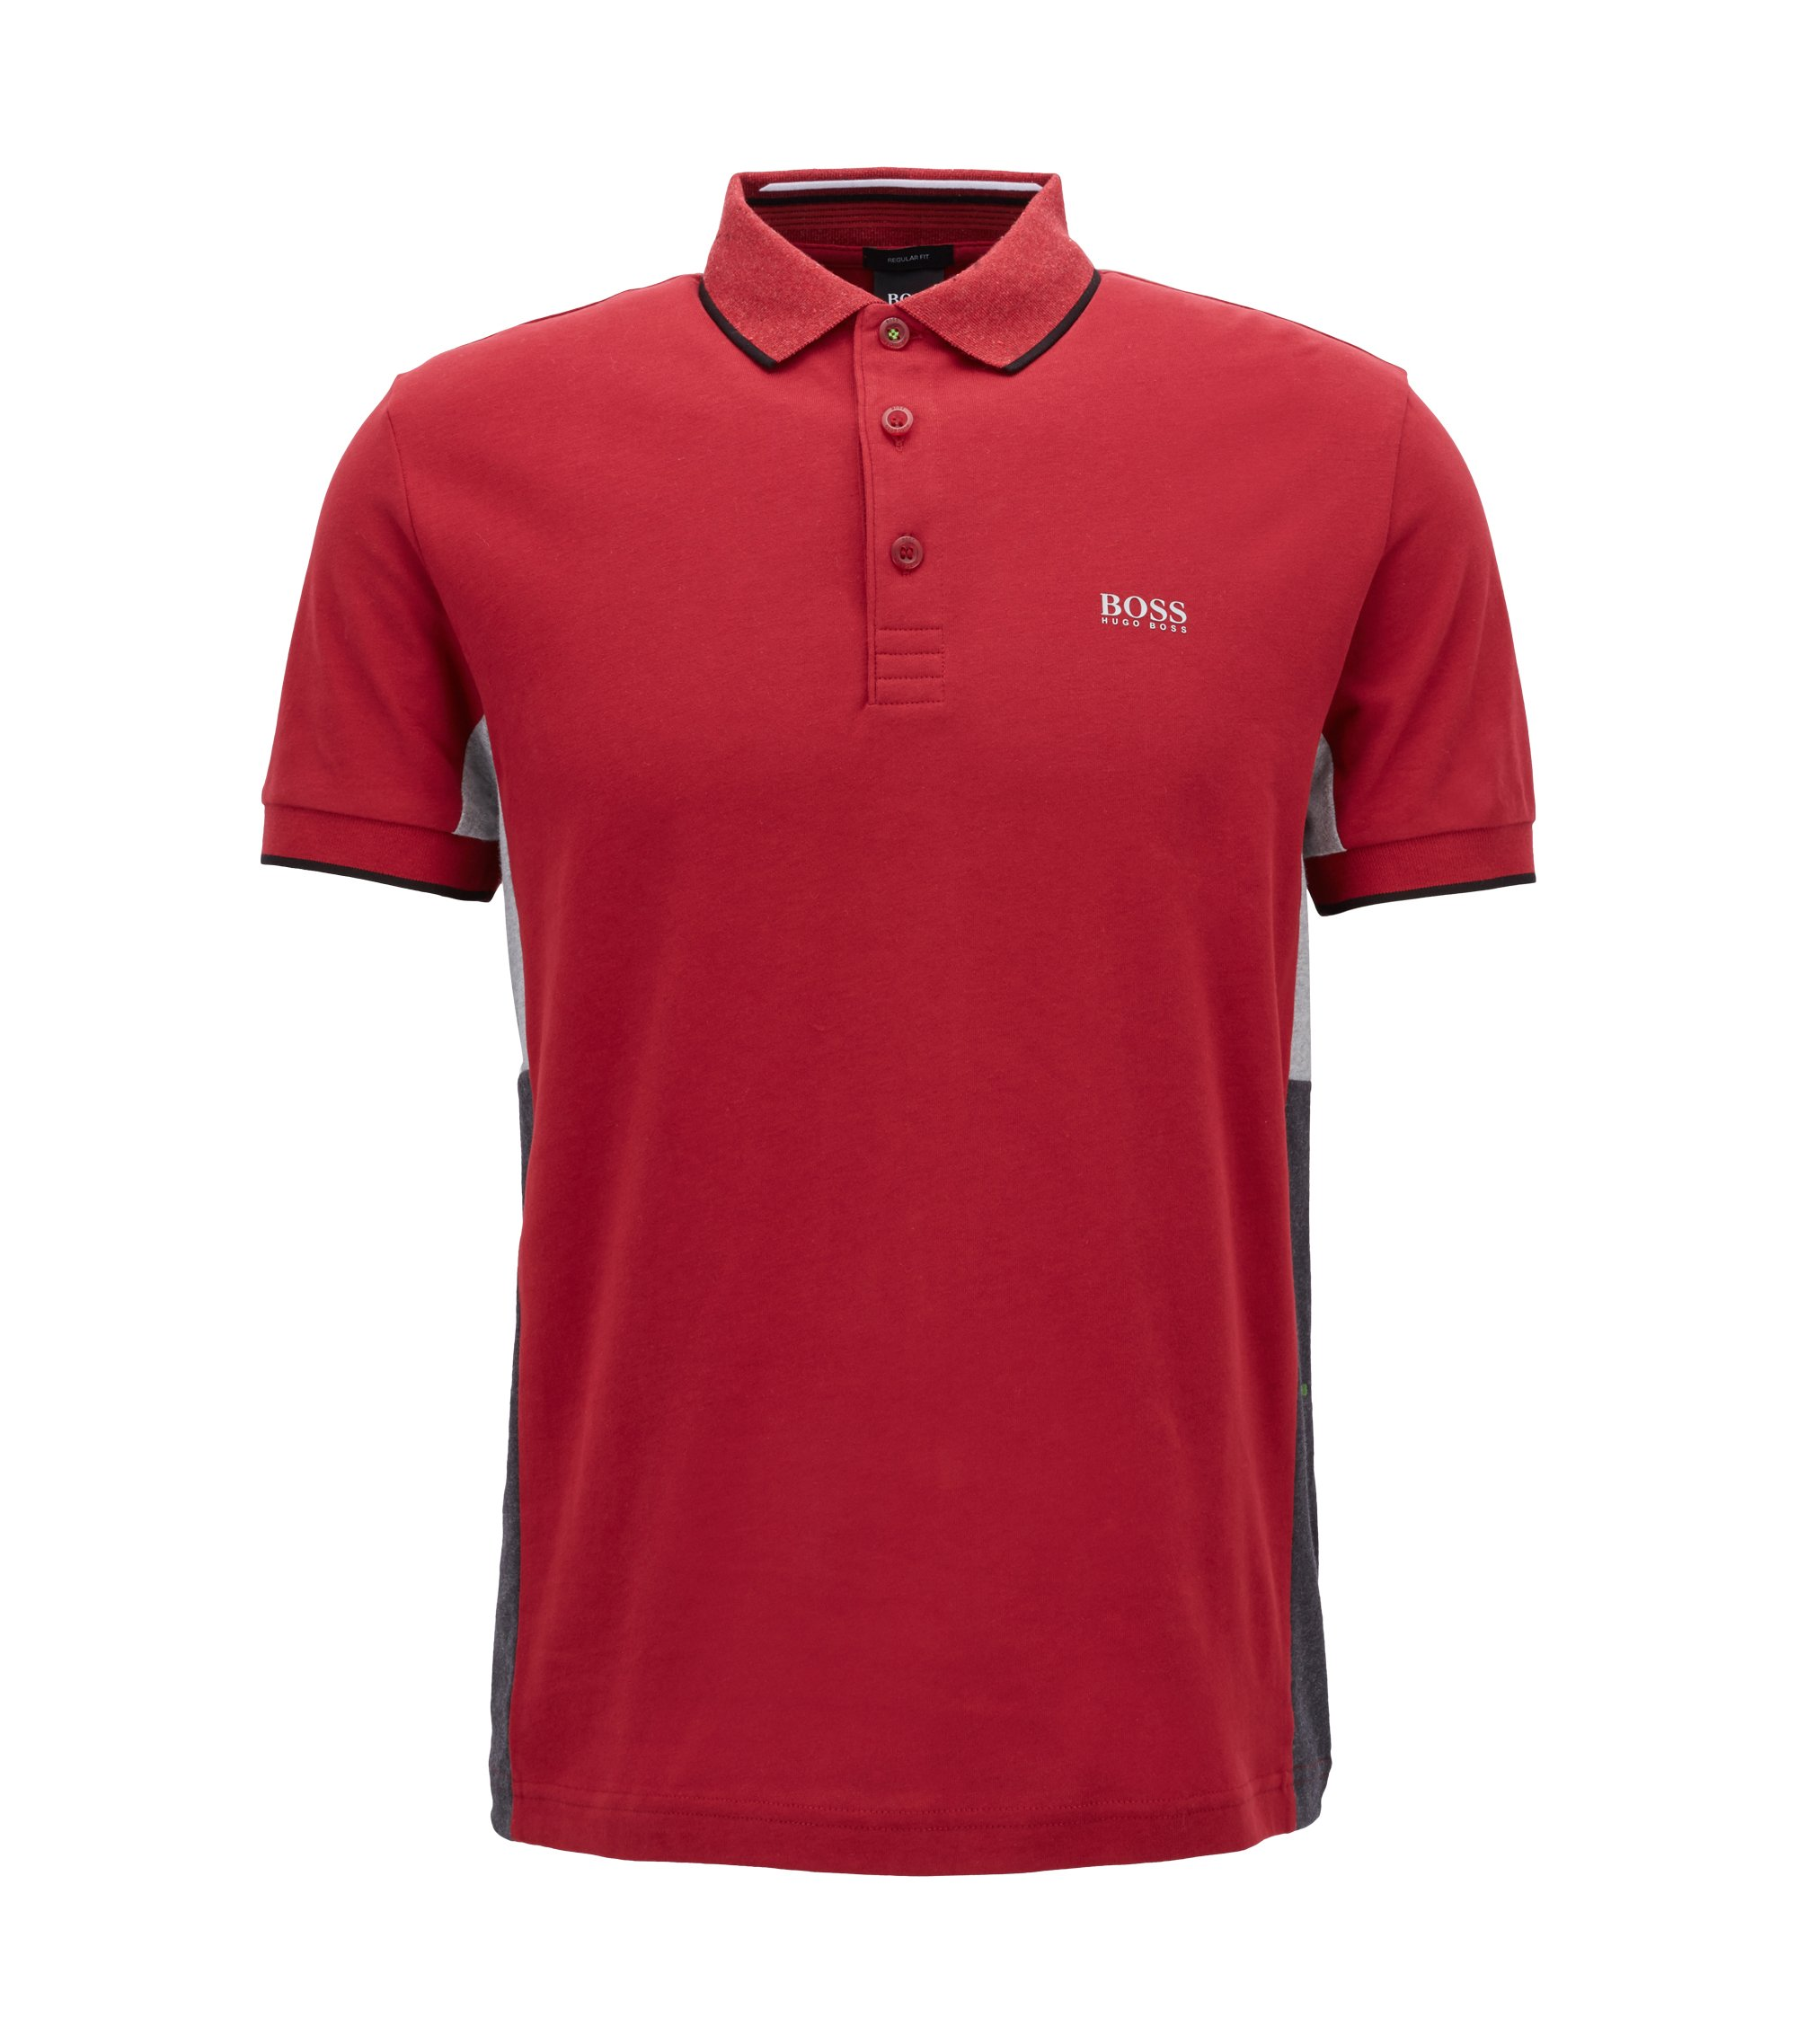 Regular-fit polo shirt in suede-effect cotton jersey, Dark Red